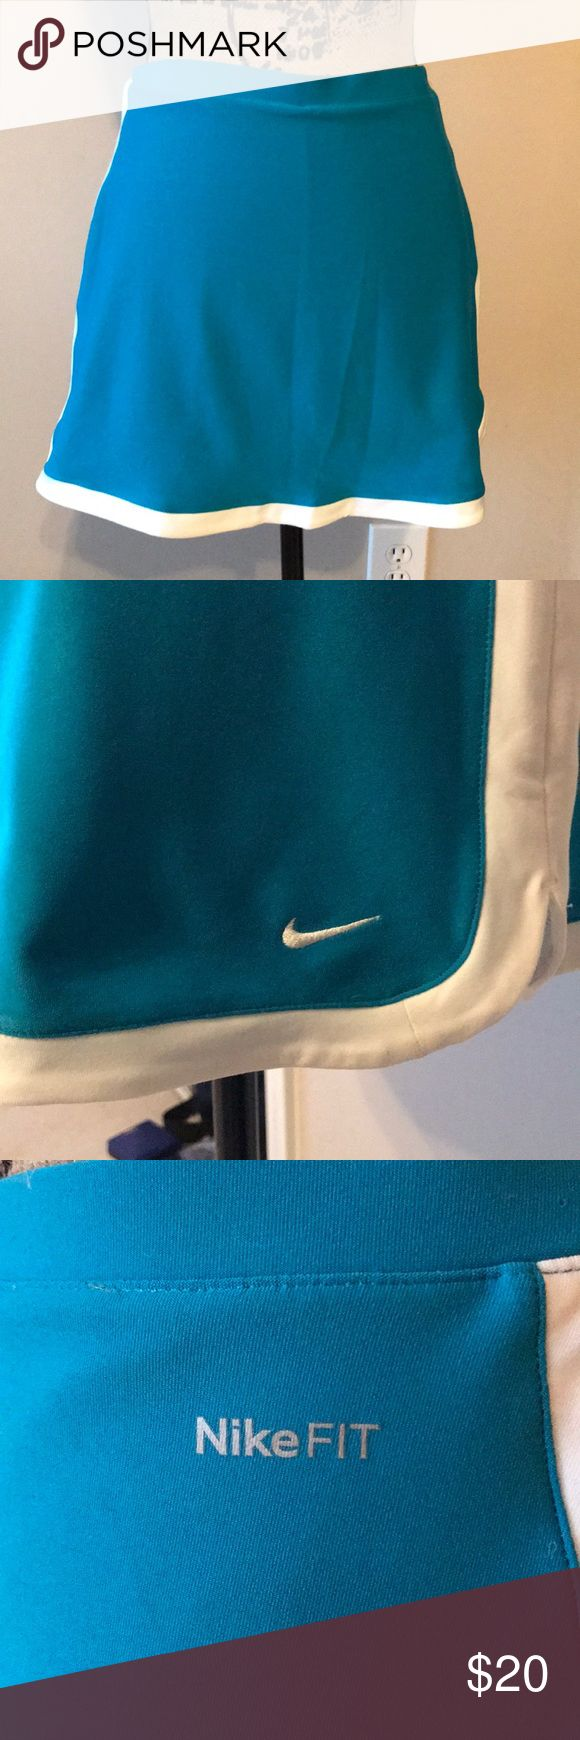 Nike activewear skirt Like new Nike skirt with built-in shorts. Nike Skirts